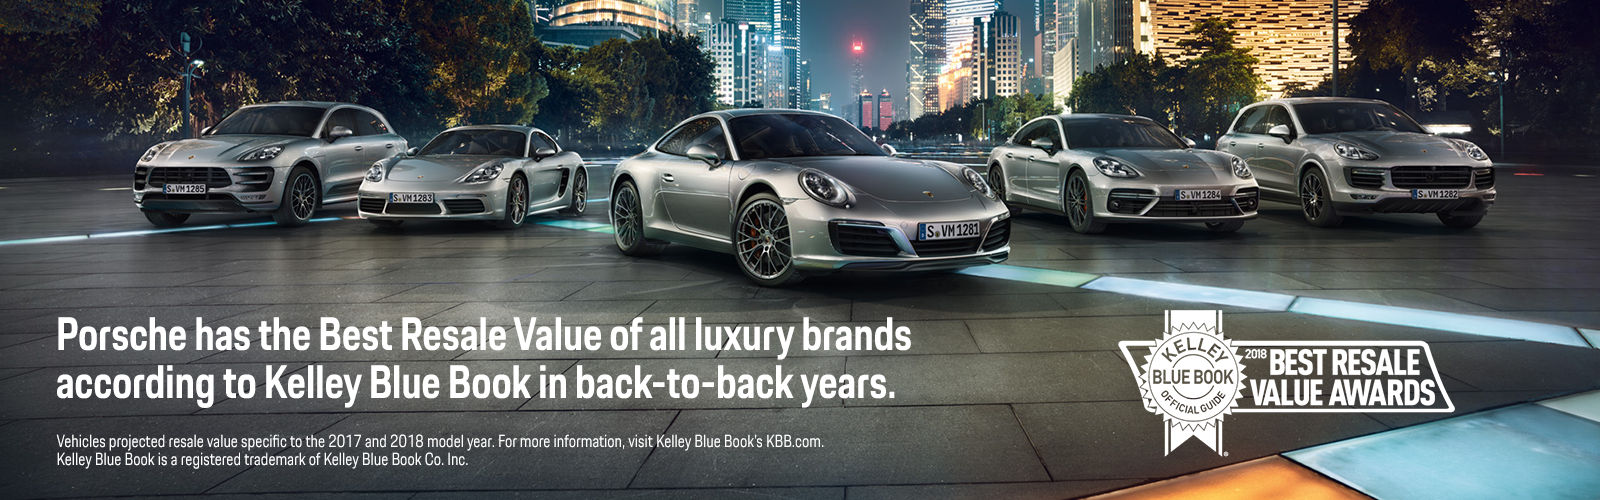 Porsche Best Resale Value of all luxury brands